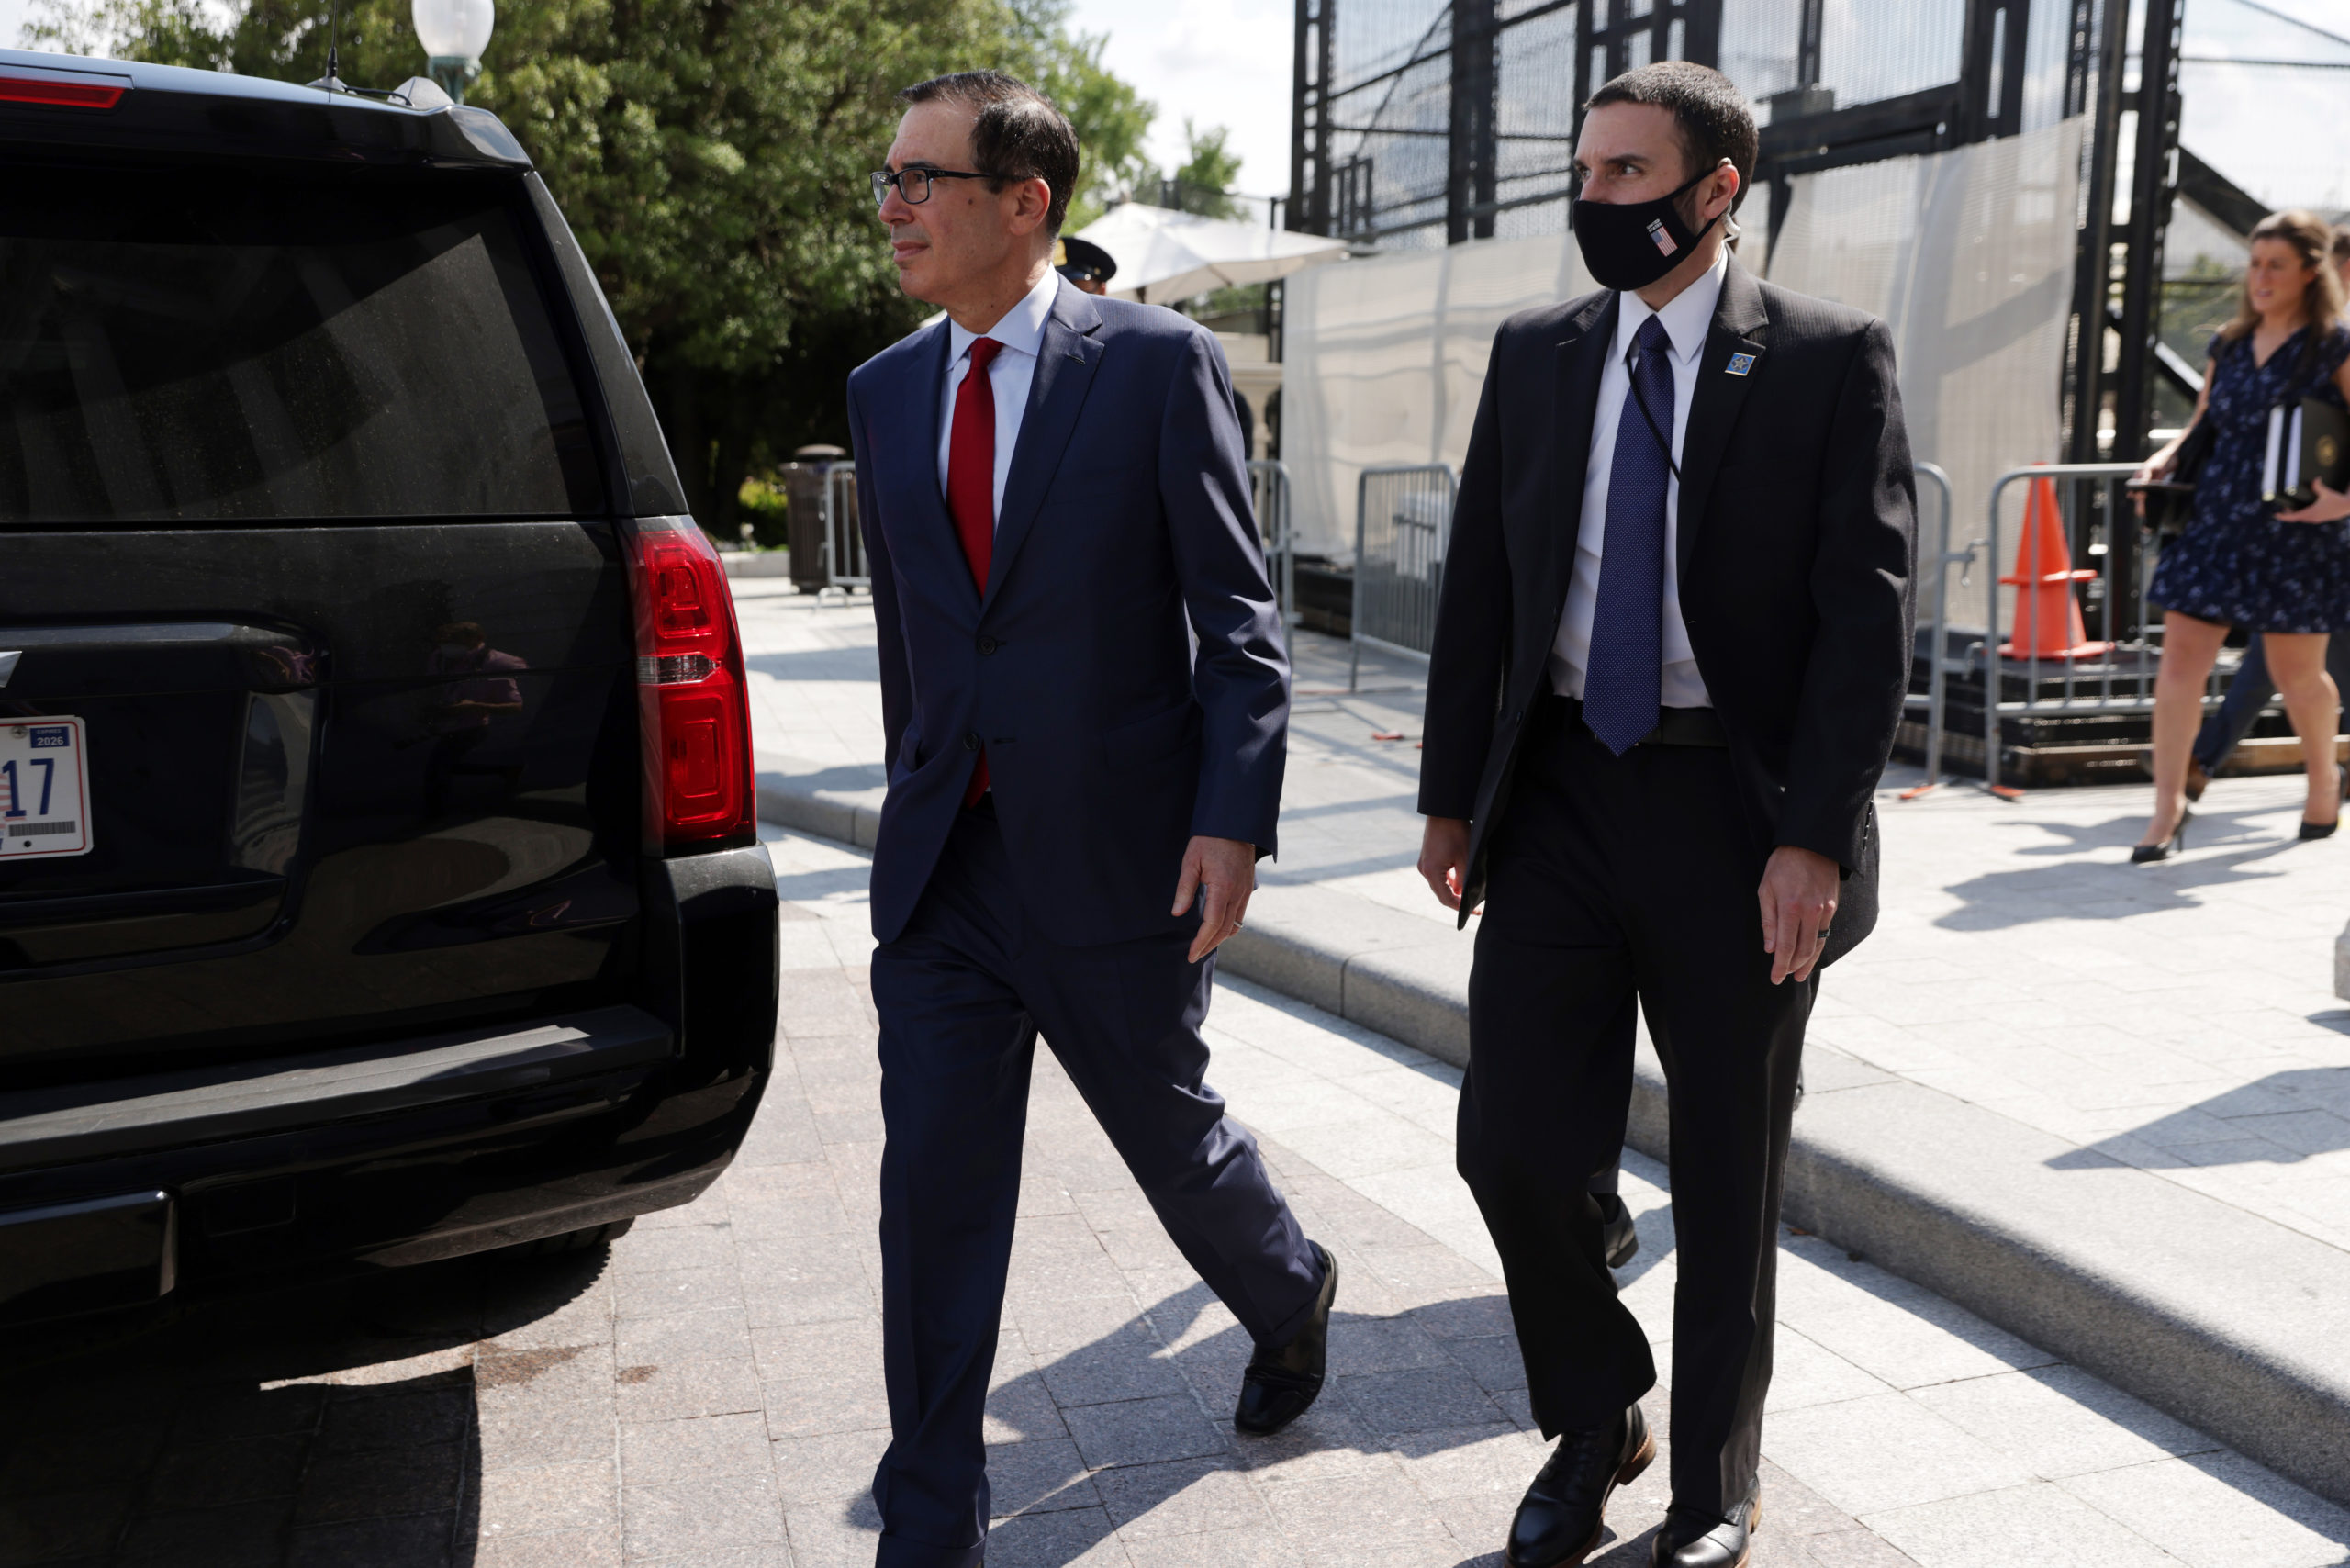 WASHINGTON, DC - AUGUST 07: U.S. Secretary of the Treasury Steven Mnuchin leaves after a meeting at the office of Speaker of the House Rep. Nancy Pelosi (D-CA) at the U.S. Capitol on August 7, 2020 in Washington, DC. Treasury Secretary Steven Mnuchin, Speaker of the House Rep. Nancy Pelosi, Senate Minority Leader Sen. Chuck Schumer and White House Chief of Staff Mark Meadows were unable to reach a deal on a new relief package to help people weather the COVID-19 pandemic. (Photo by Alex Wong/Getty Images)